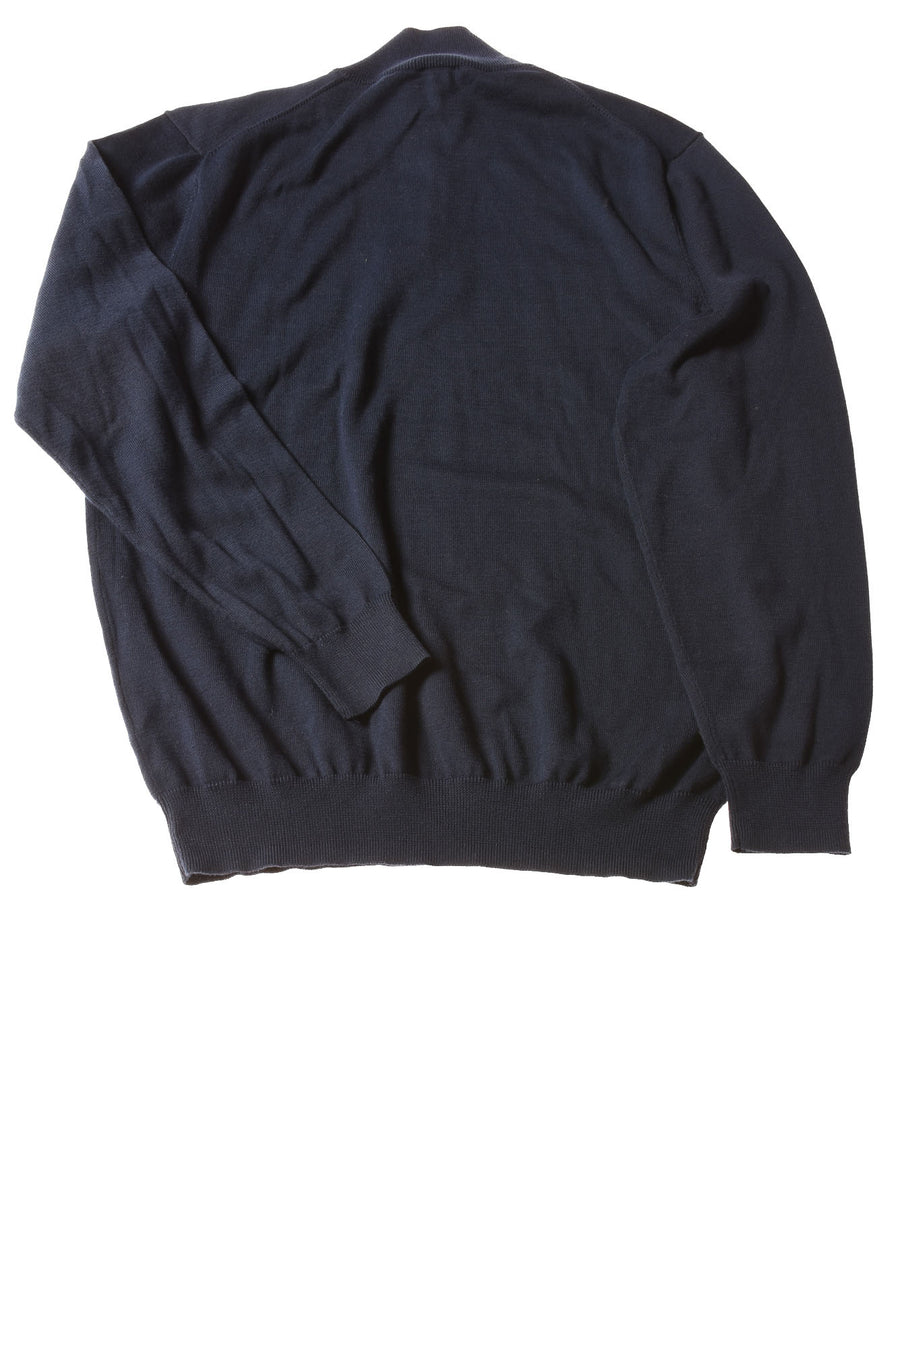 Men's Sweater By Jos.A.Bank